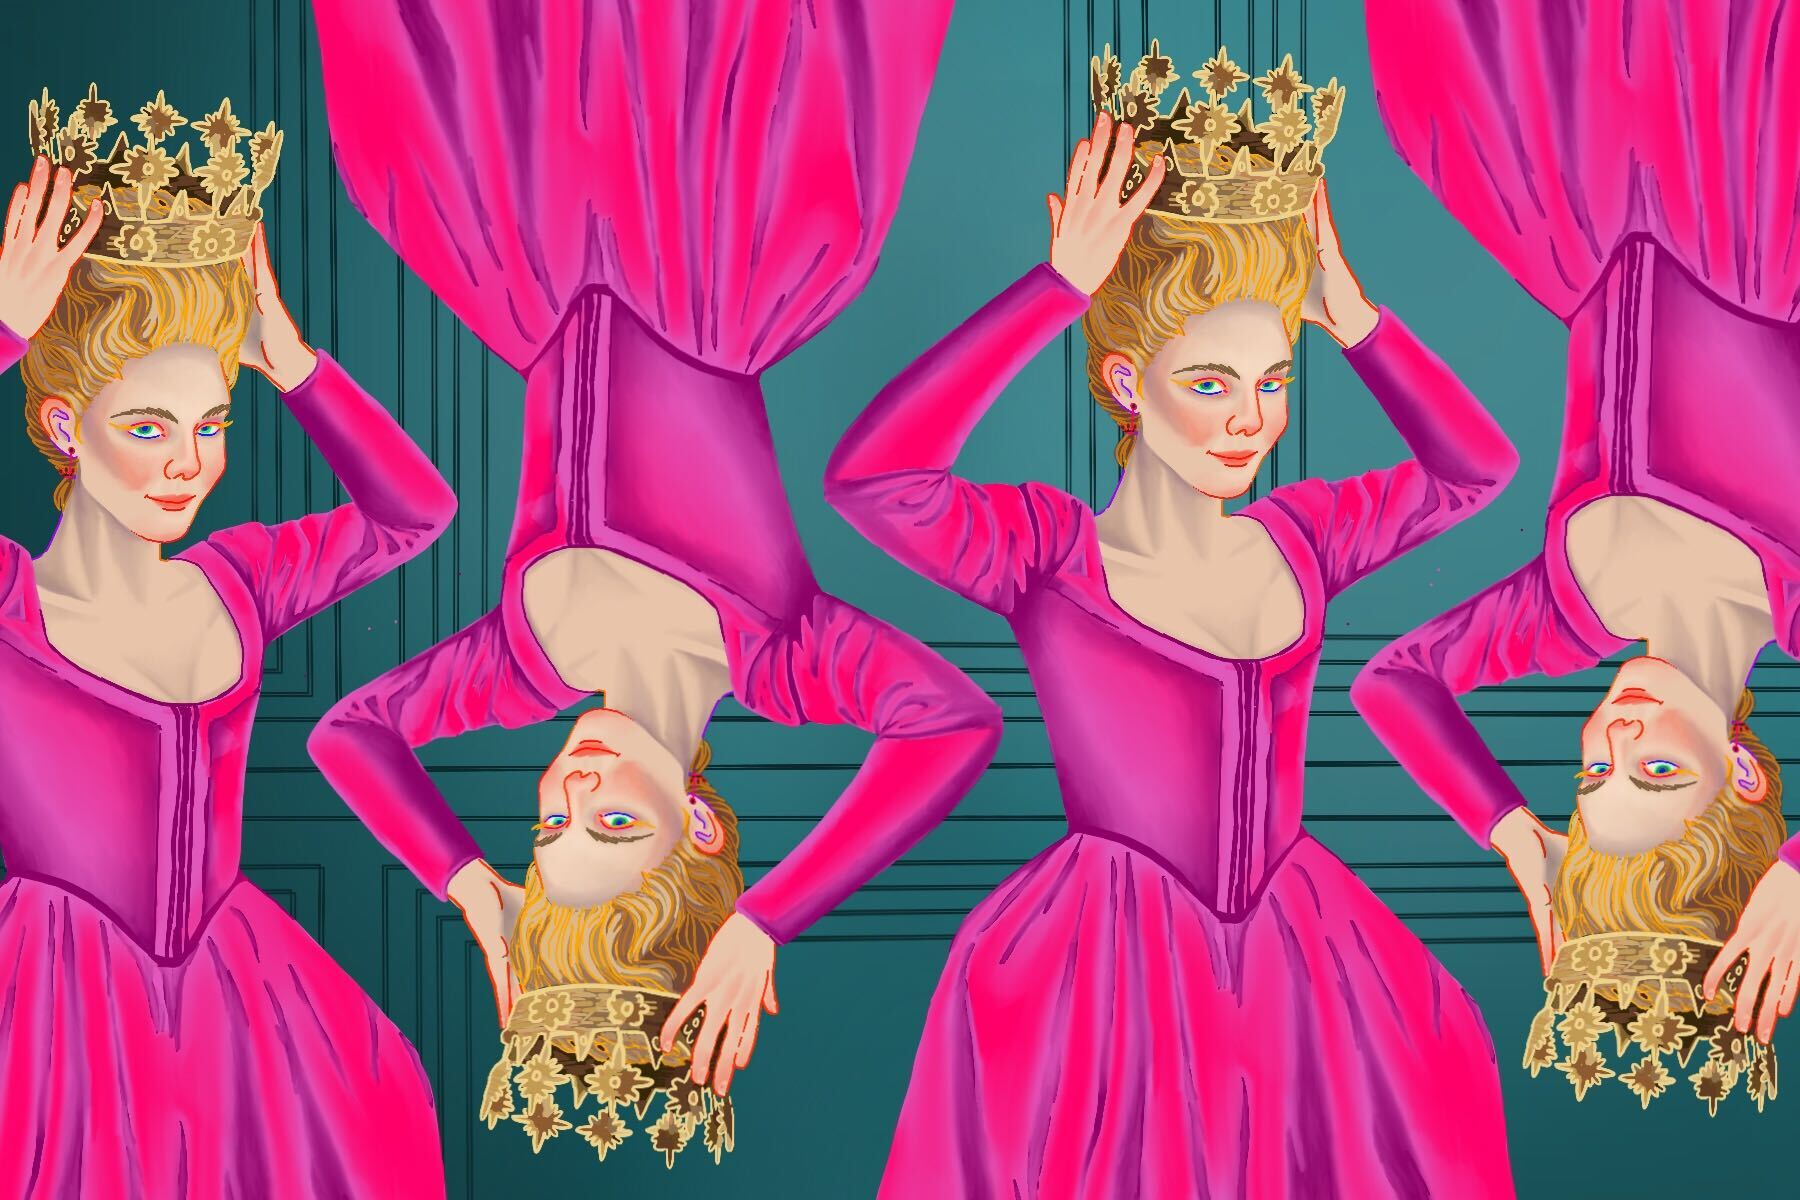 Illustration by Baz Pugmire of Elle Fanning in 'The Great'